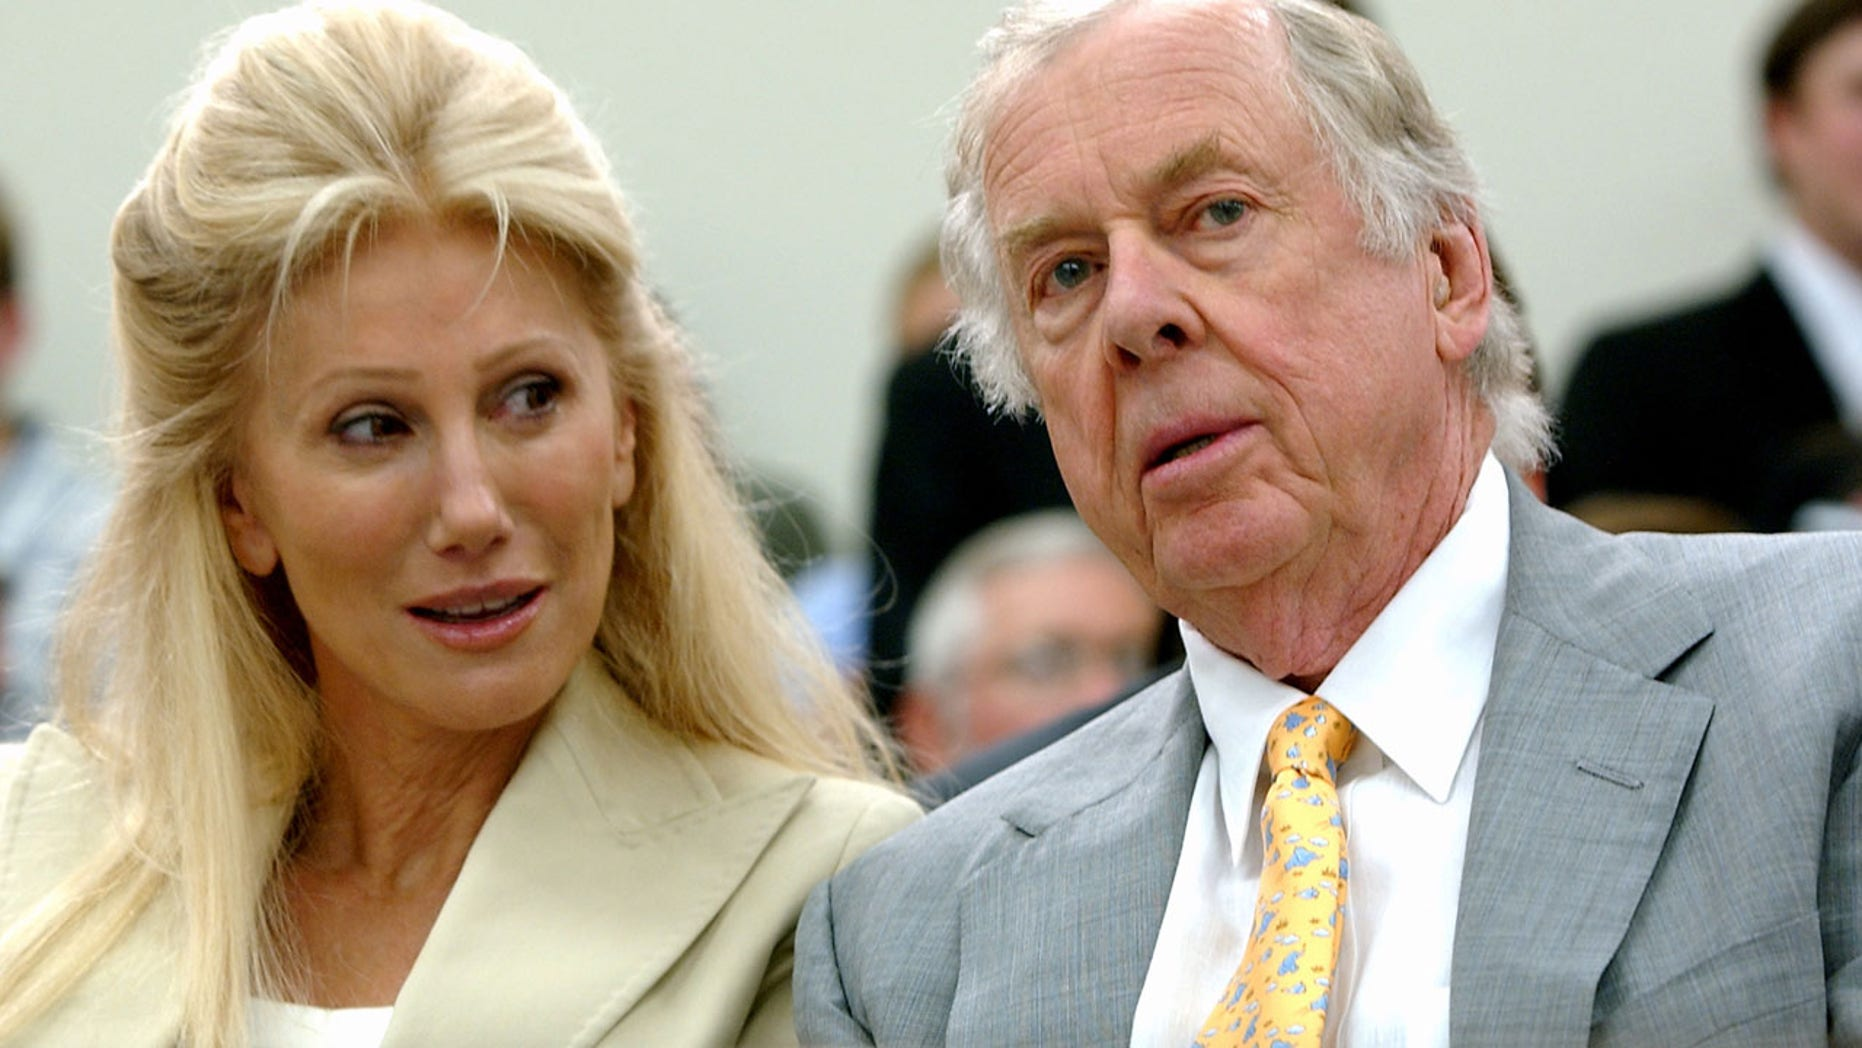 July 25, 2006: Oklahoma energy tycoon T. Boone Pickens, right, with his wife, Madeleine, appear at a House Energy and Commerce subcommittee hearing on Capitol Hill in Washington.